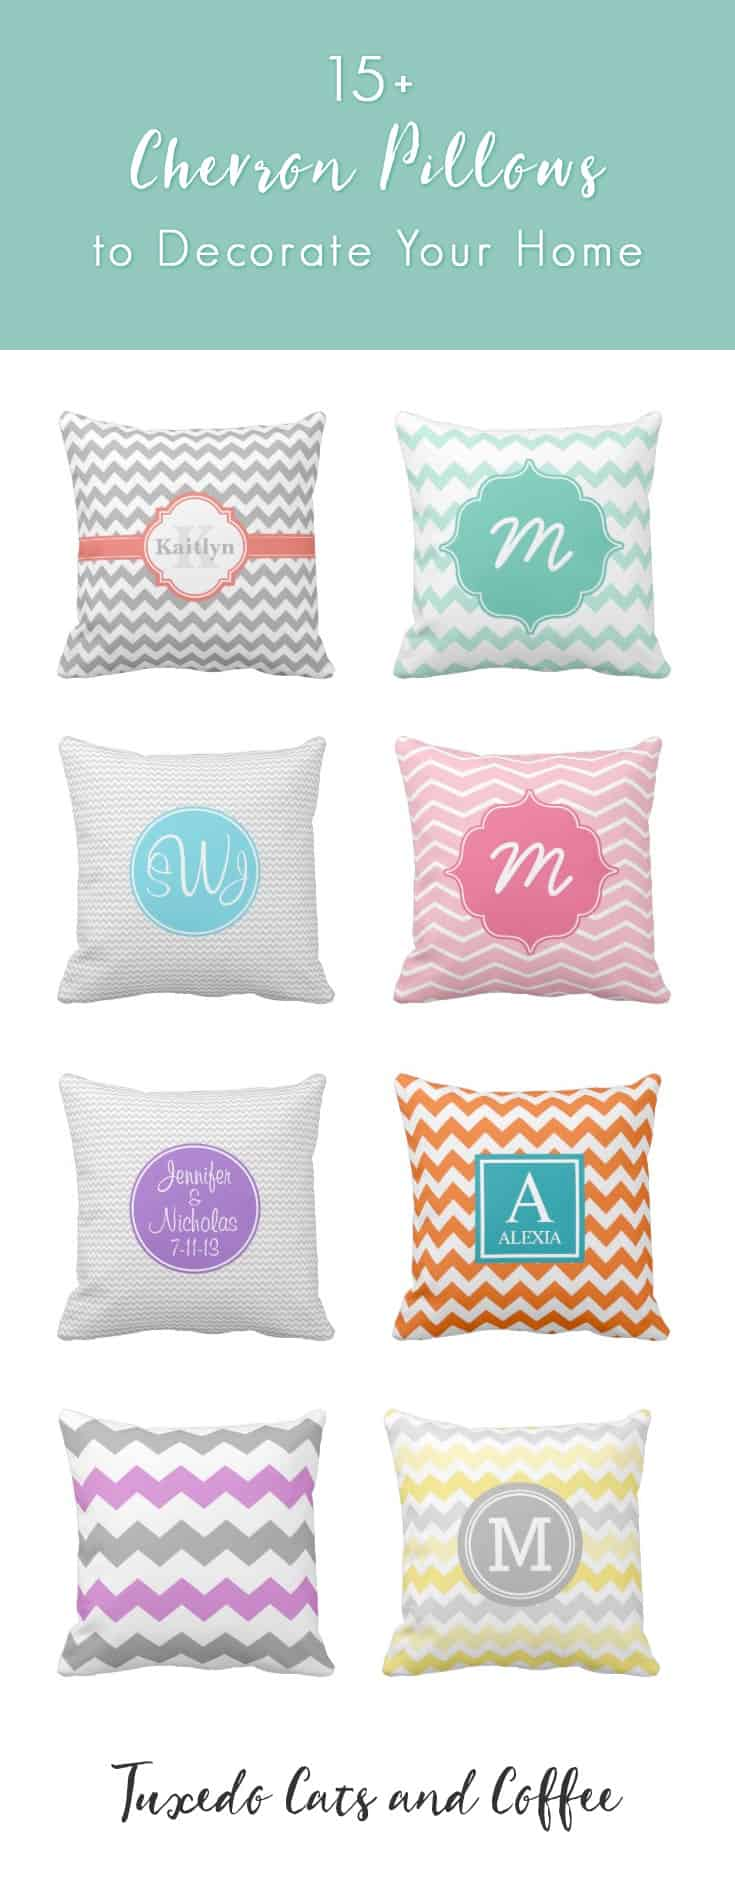 We have a huge selection of chevron pillows on this post. Decorate your home or couches with beautiful and modern chevron pillows. We even have monogram chevron pillows for a more personal touch.